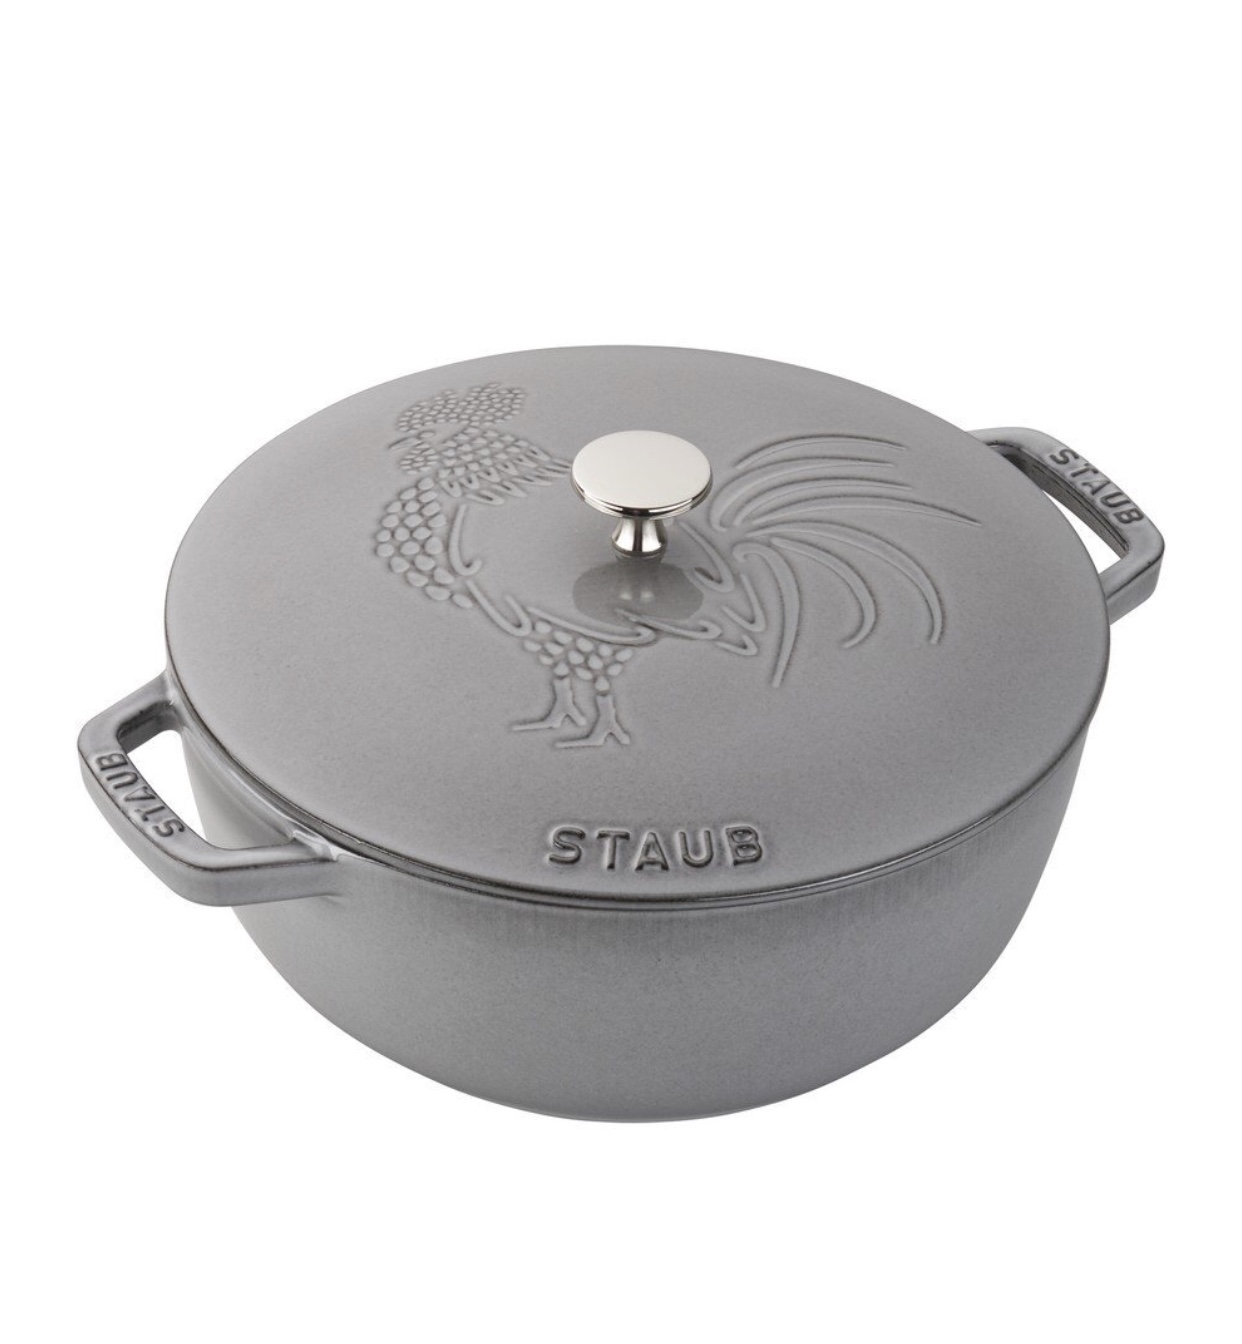 Staub Cookware 3.75 Quart Essential French Oven Rooster, Color: Graphite Grey